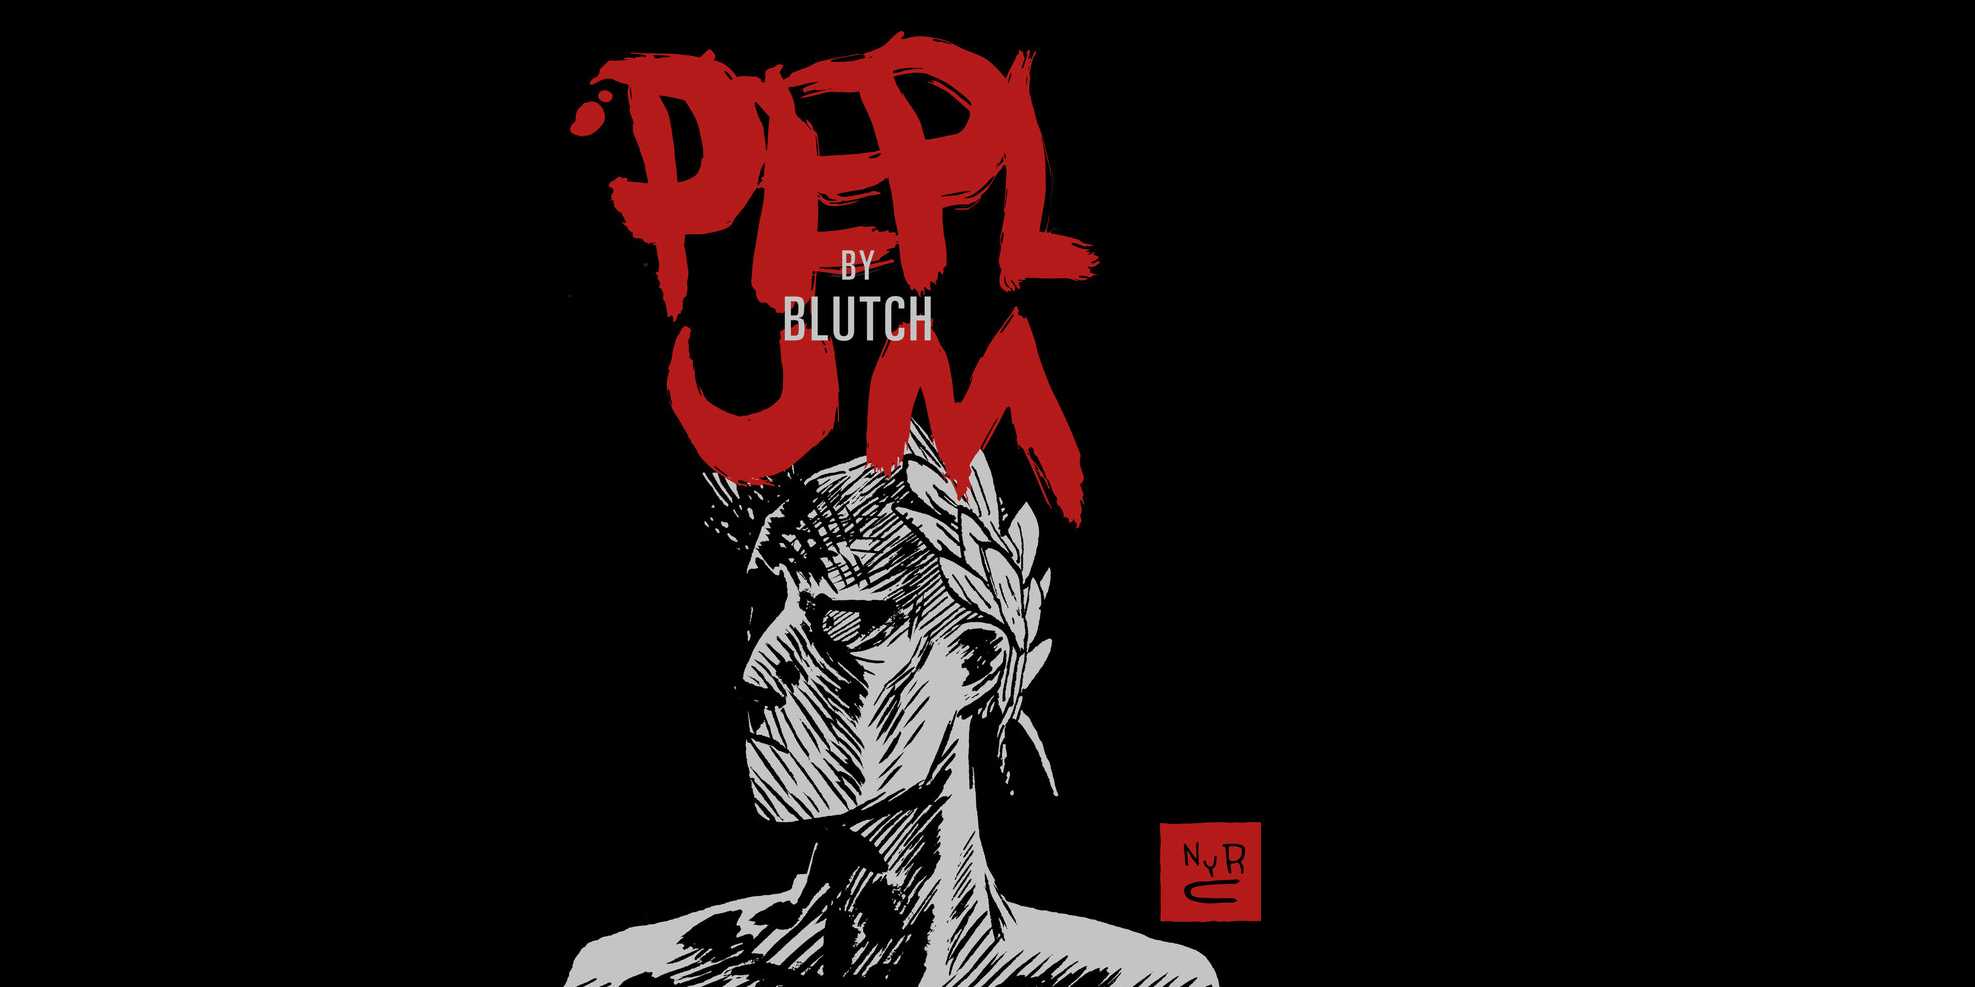 Blutch's 'Peplum': A French Graphic Novel Masterwork Comes To America